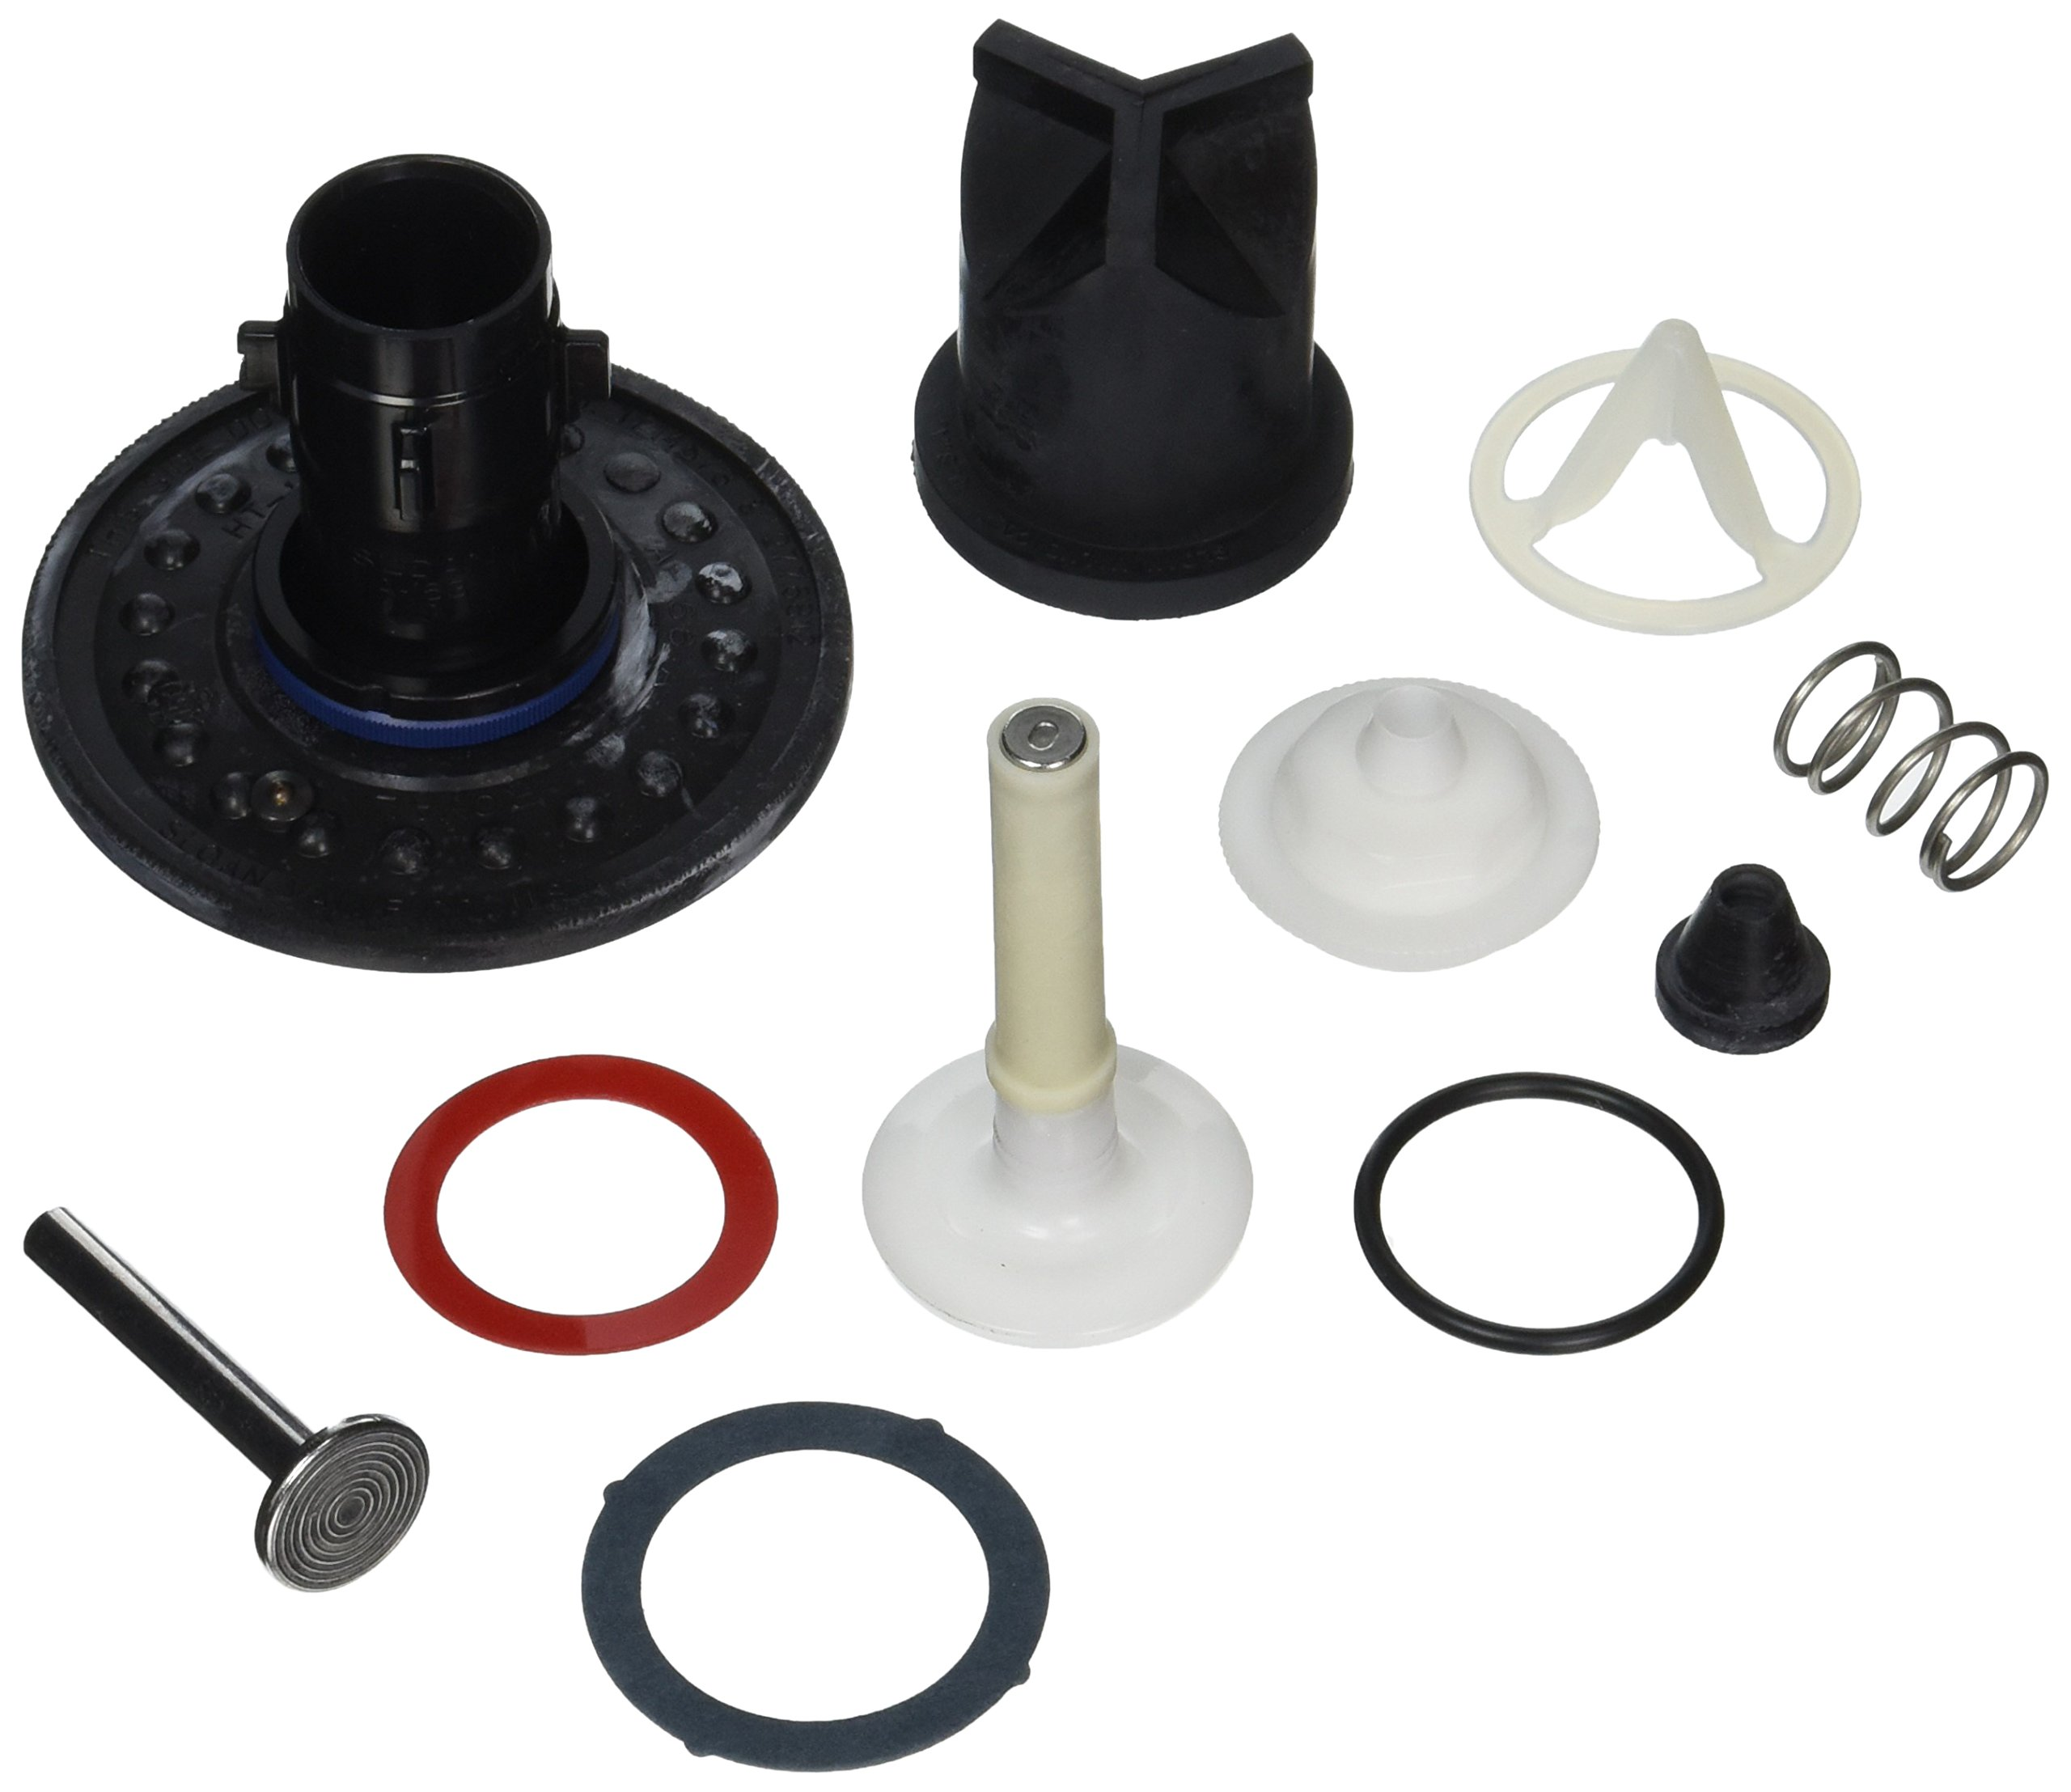 Sloan Valve R-1003-A Regal 3.5 GPF / 13.2 Lpf Closet Rebuilding Kit by Sloan Valve